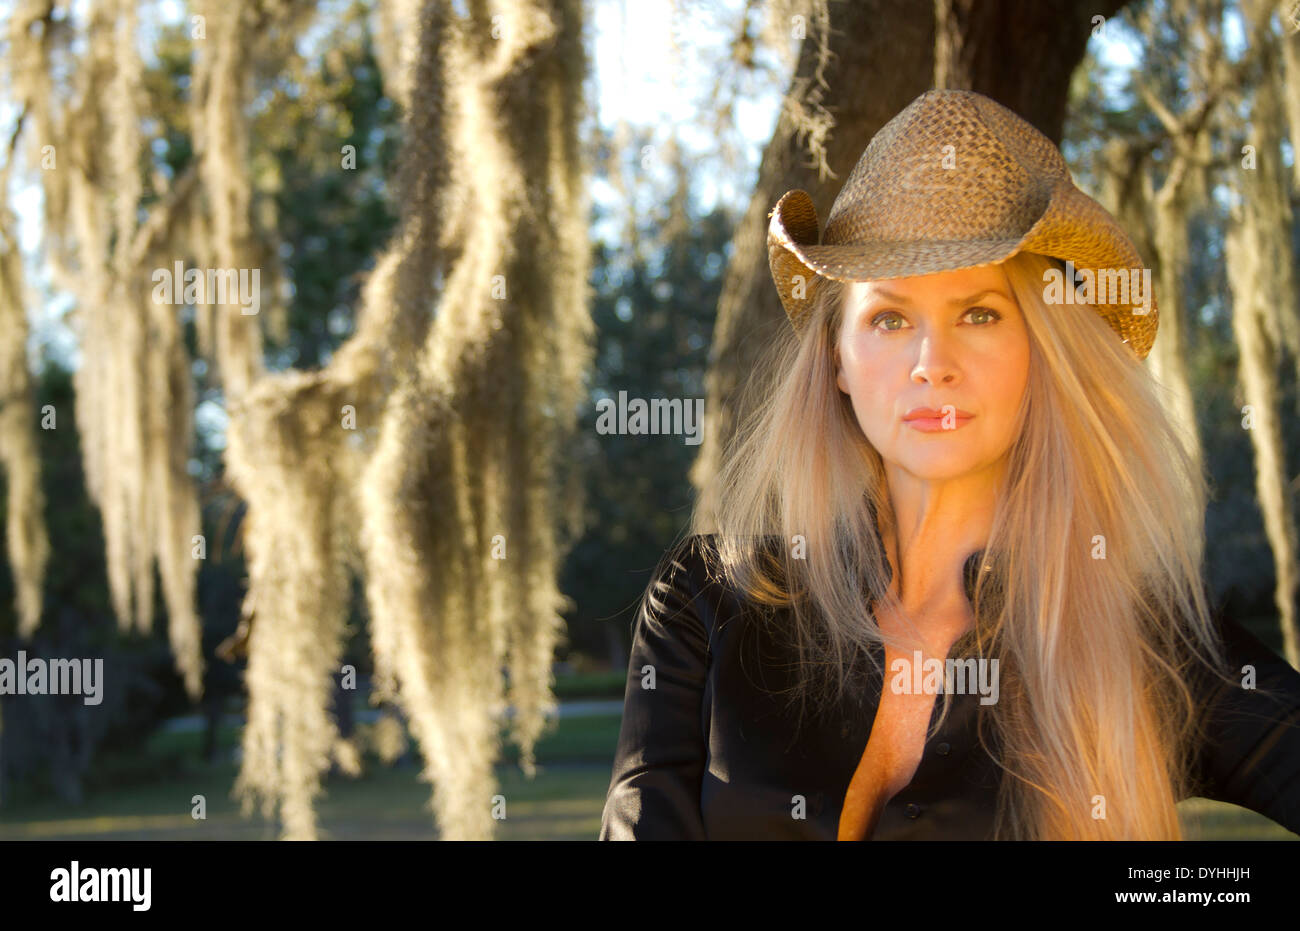 beautiful blonde middle aged woman cowgirl with cowboy hat on - Stock Image e38b582501b6